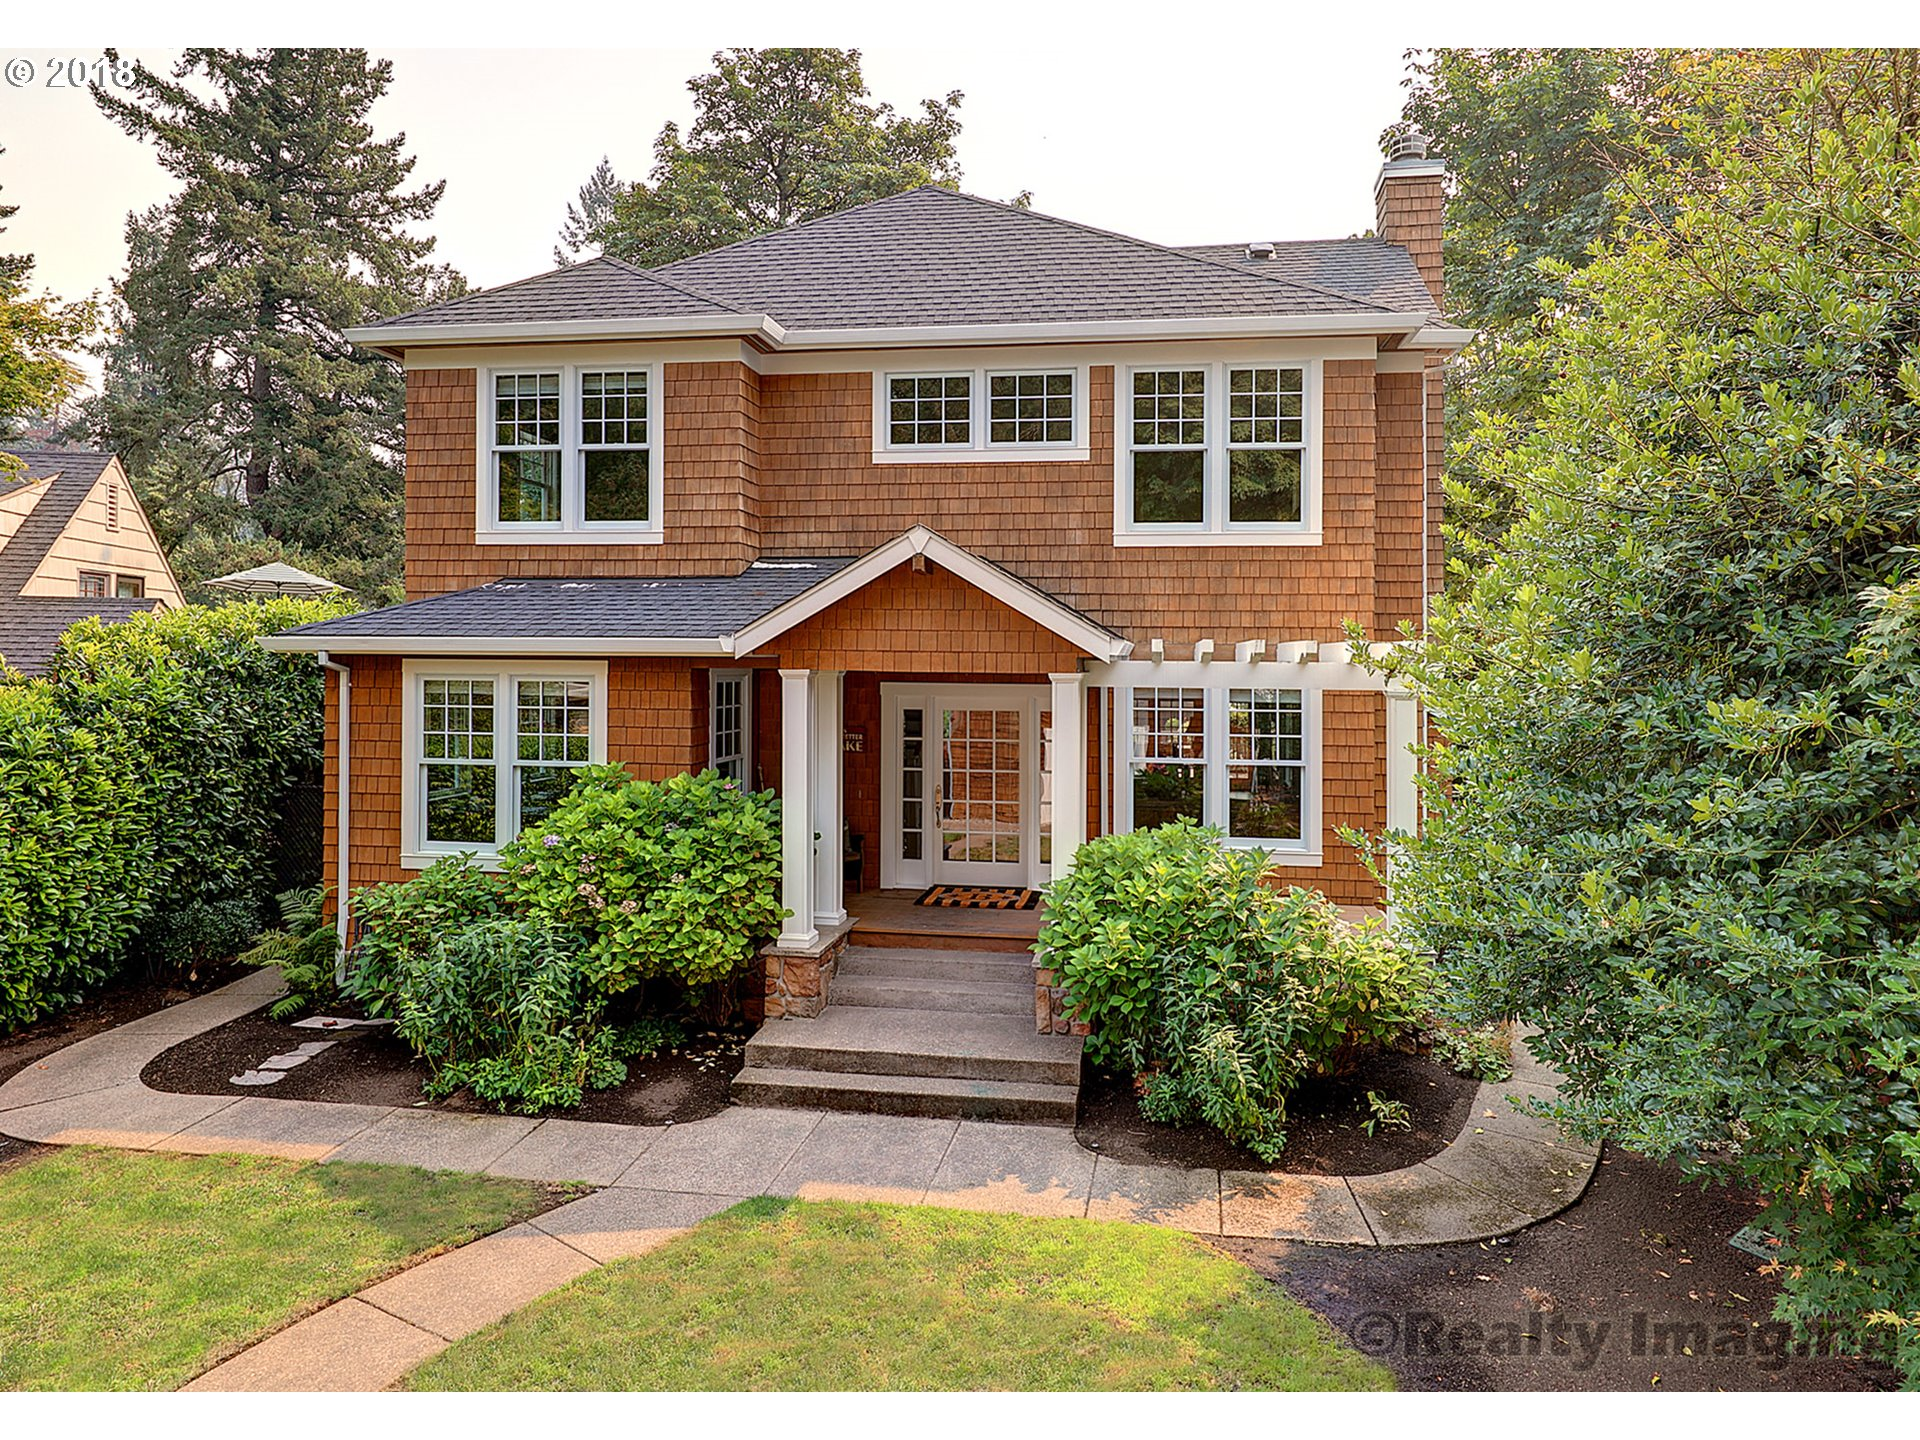 17399 CANAL CIR, Lake Oswego, OR 97035